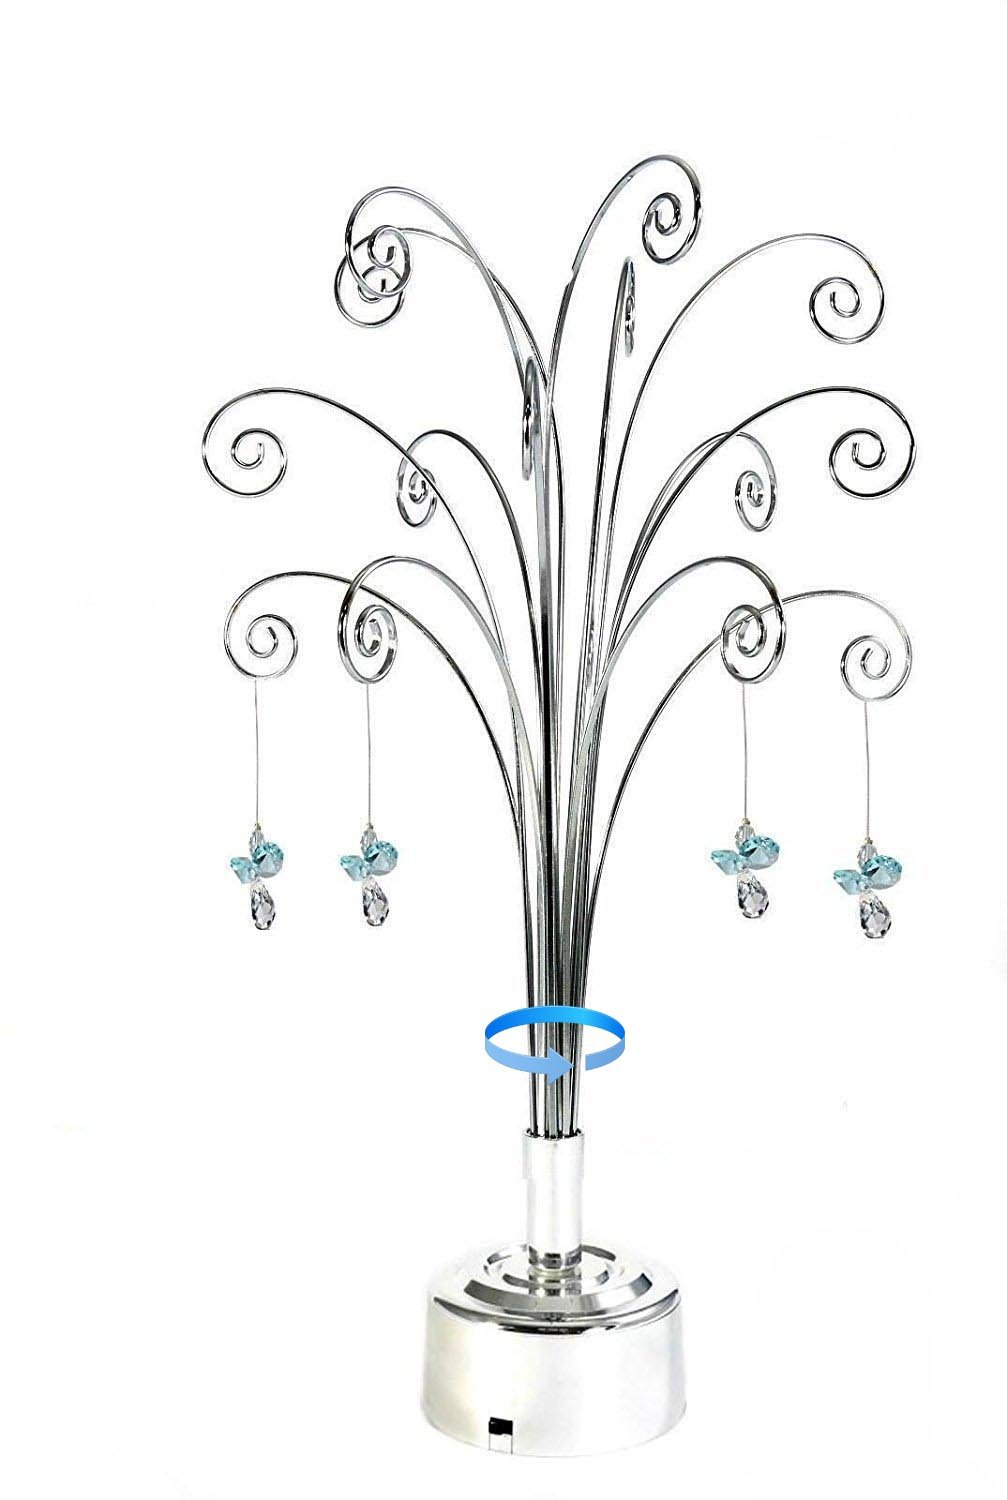 HOHIYA Hanging Crystal Suncatchers Ball Garden Guardian Angel Butterfly Prisms Pendant Drop Rainbow Maker Feng Shui Party Home Decoraions Rotating Display Hanger Hook Stand 16.75inch(Silver)